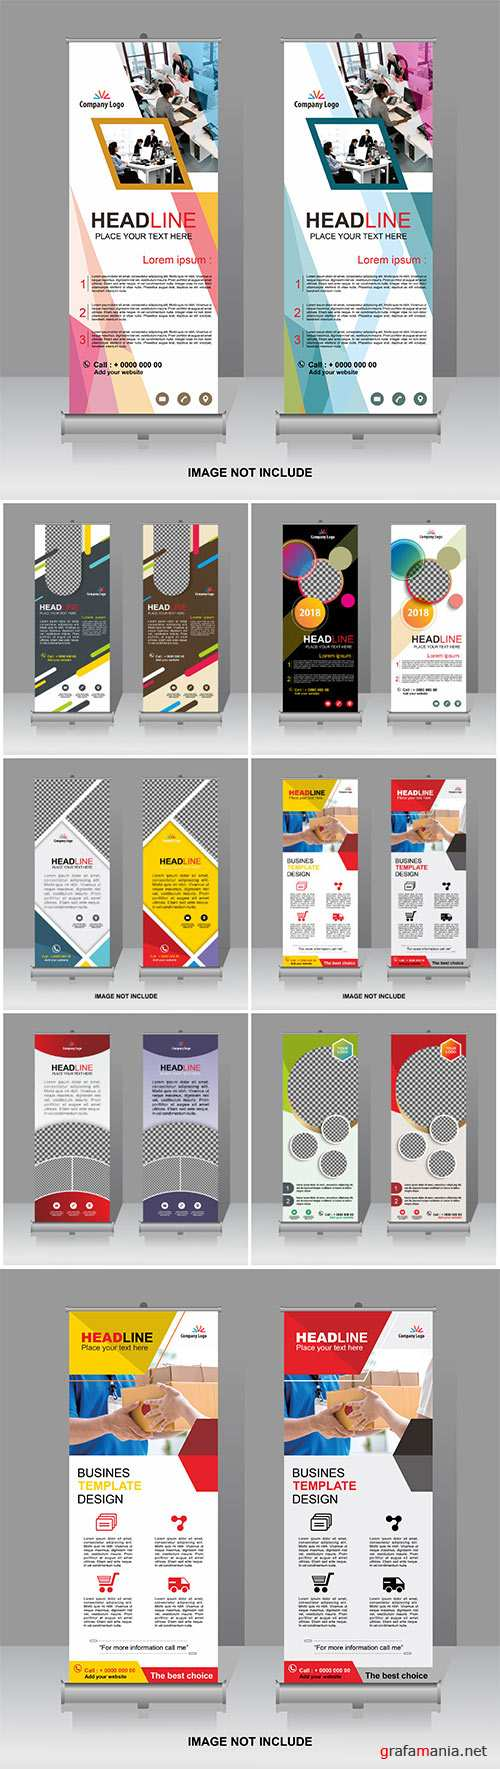 Roll-up vector template